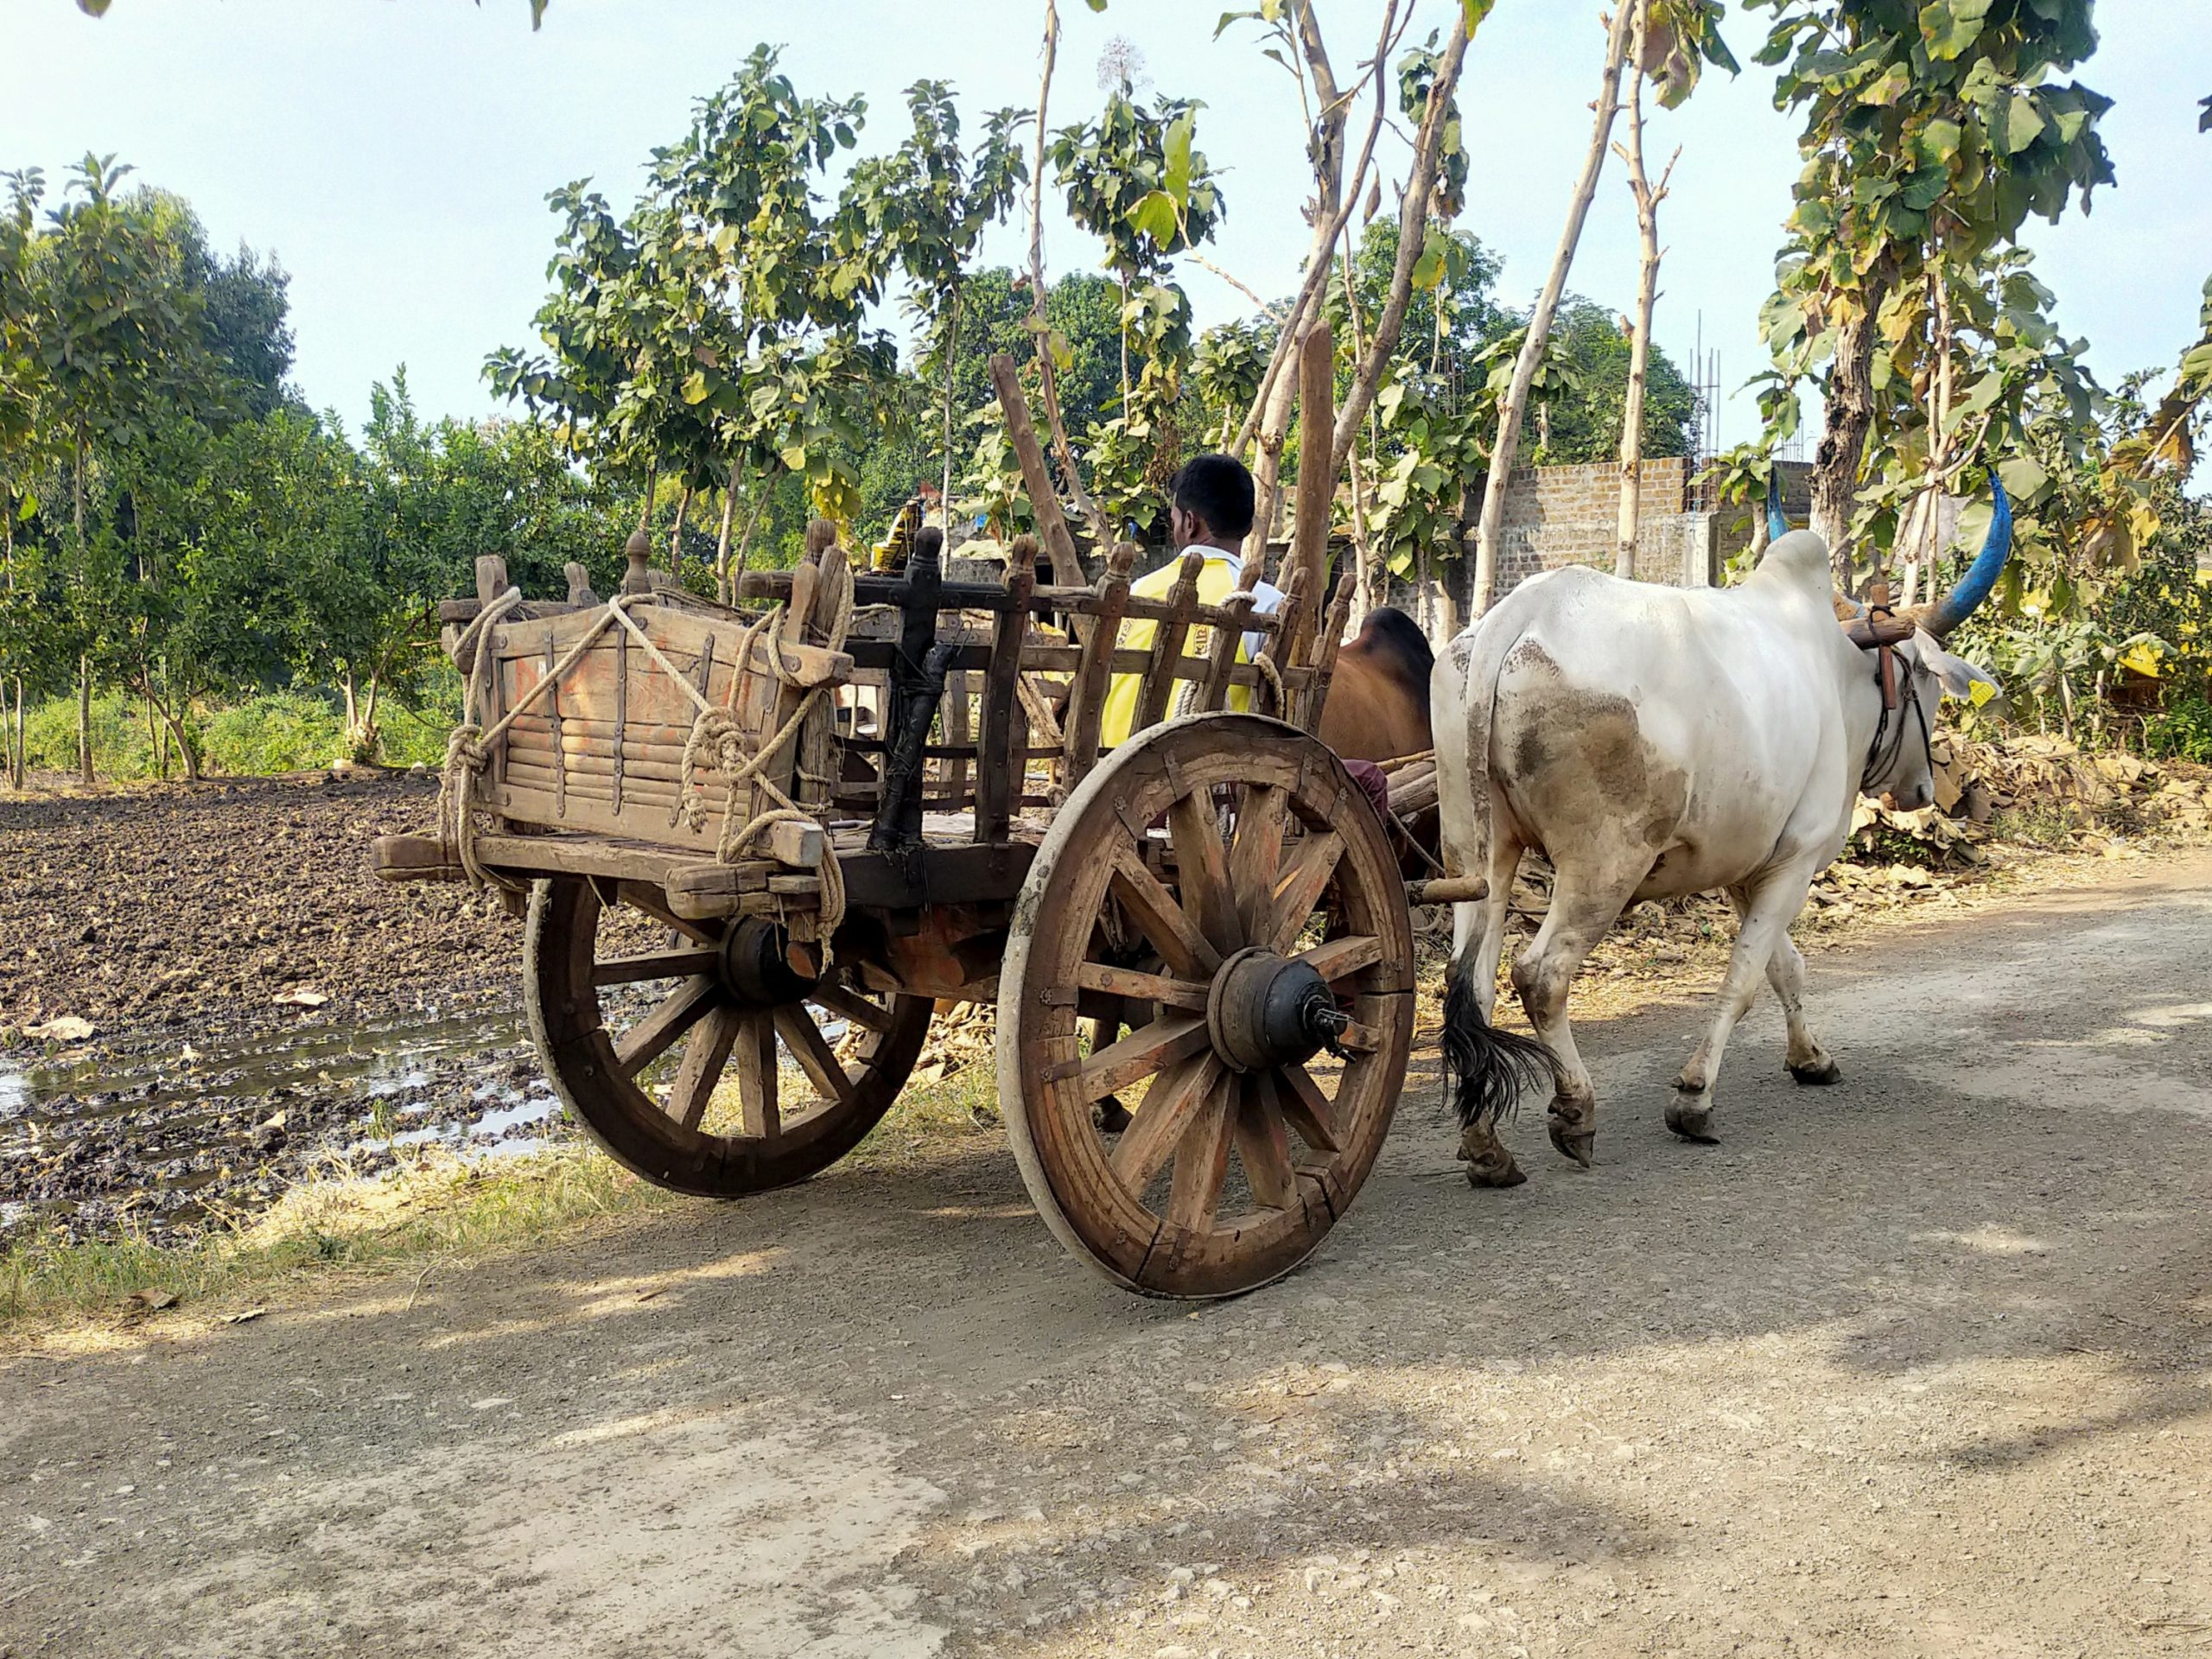 An ox cart